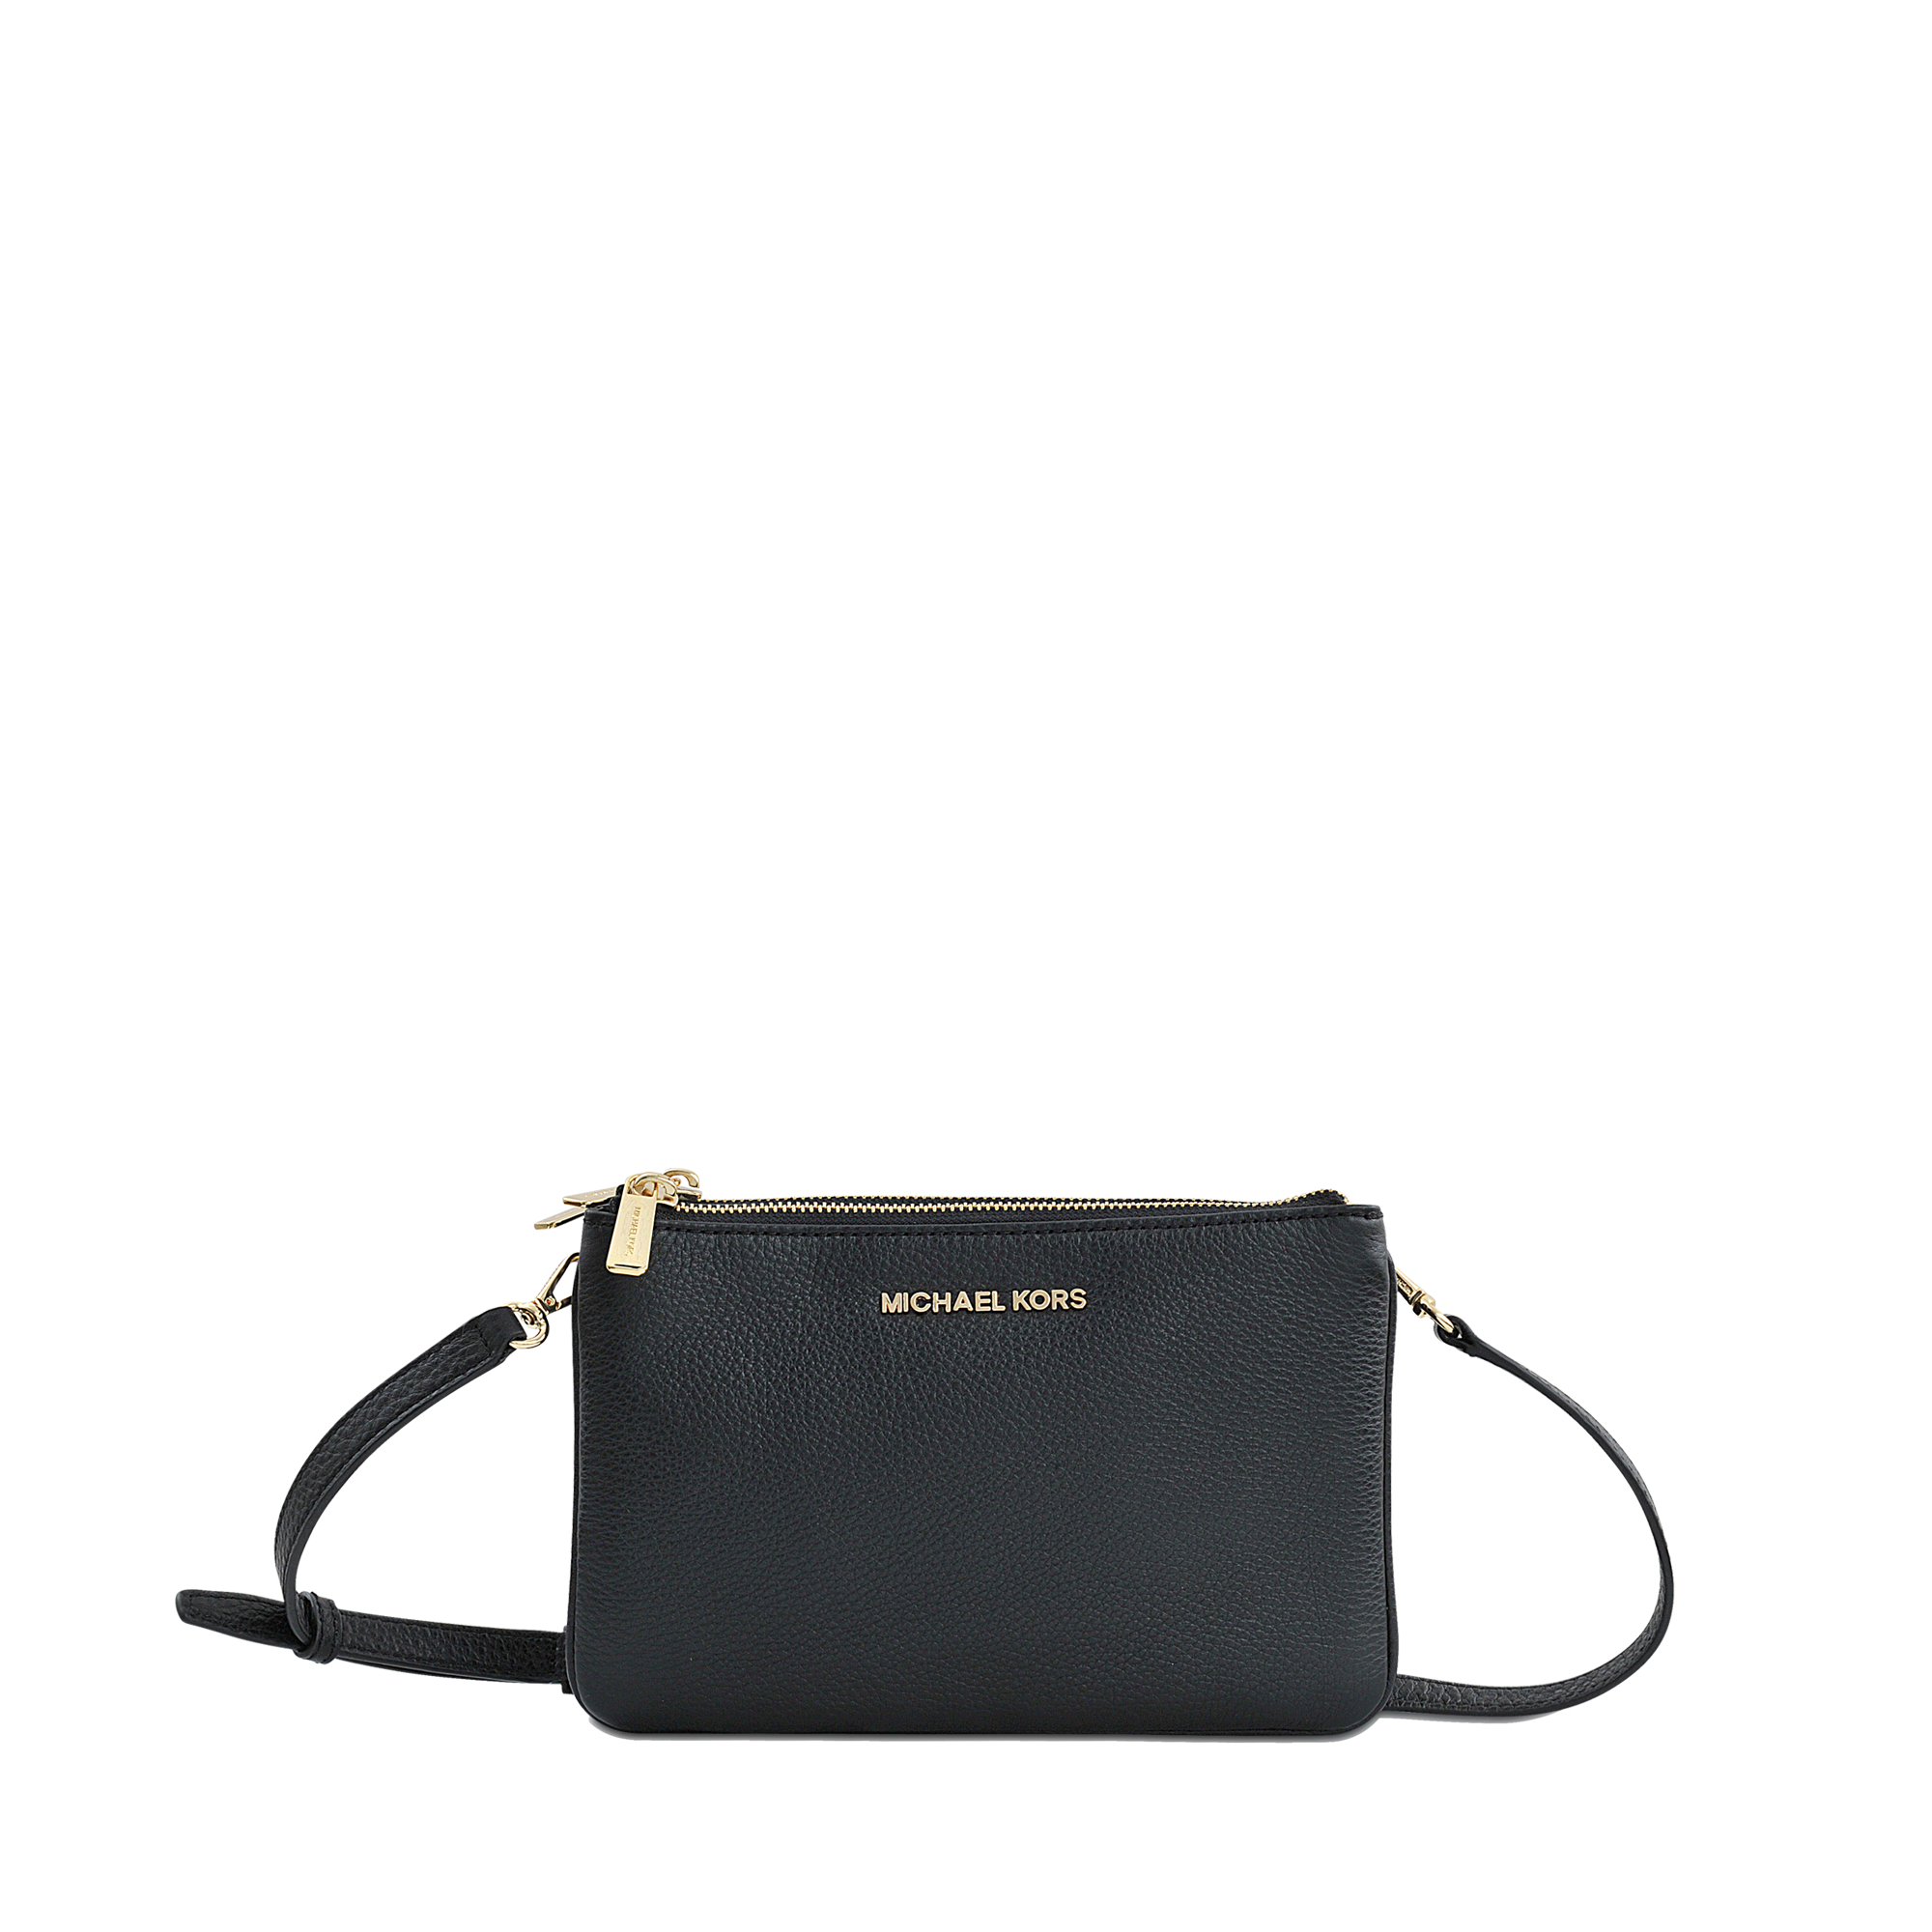 Michael kors Triple Compartment Bedford Bag in Black | Lyst